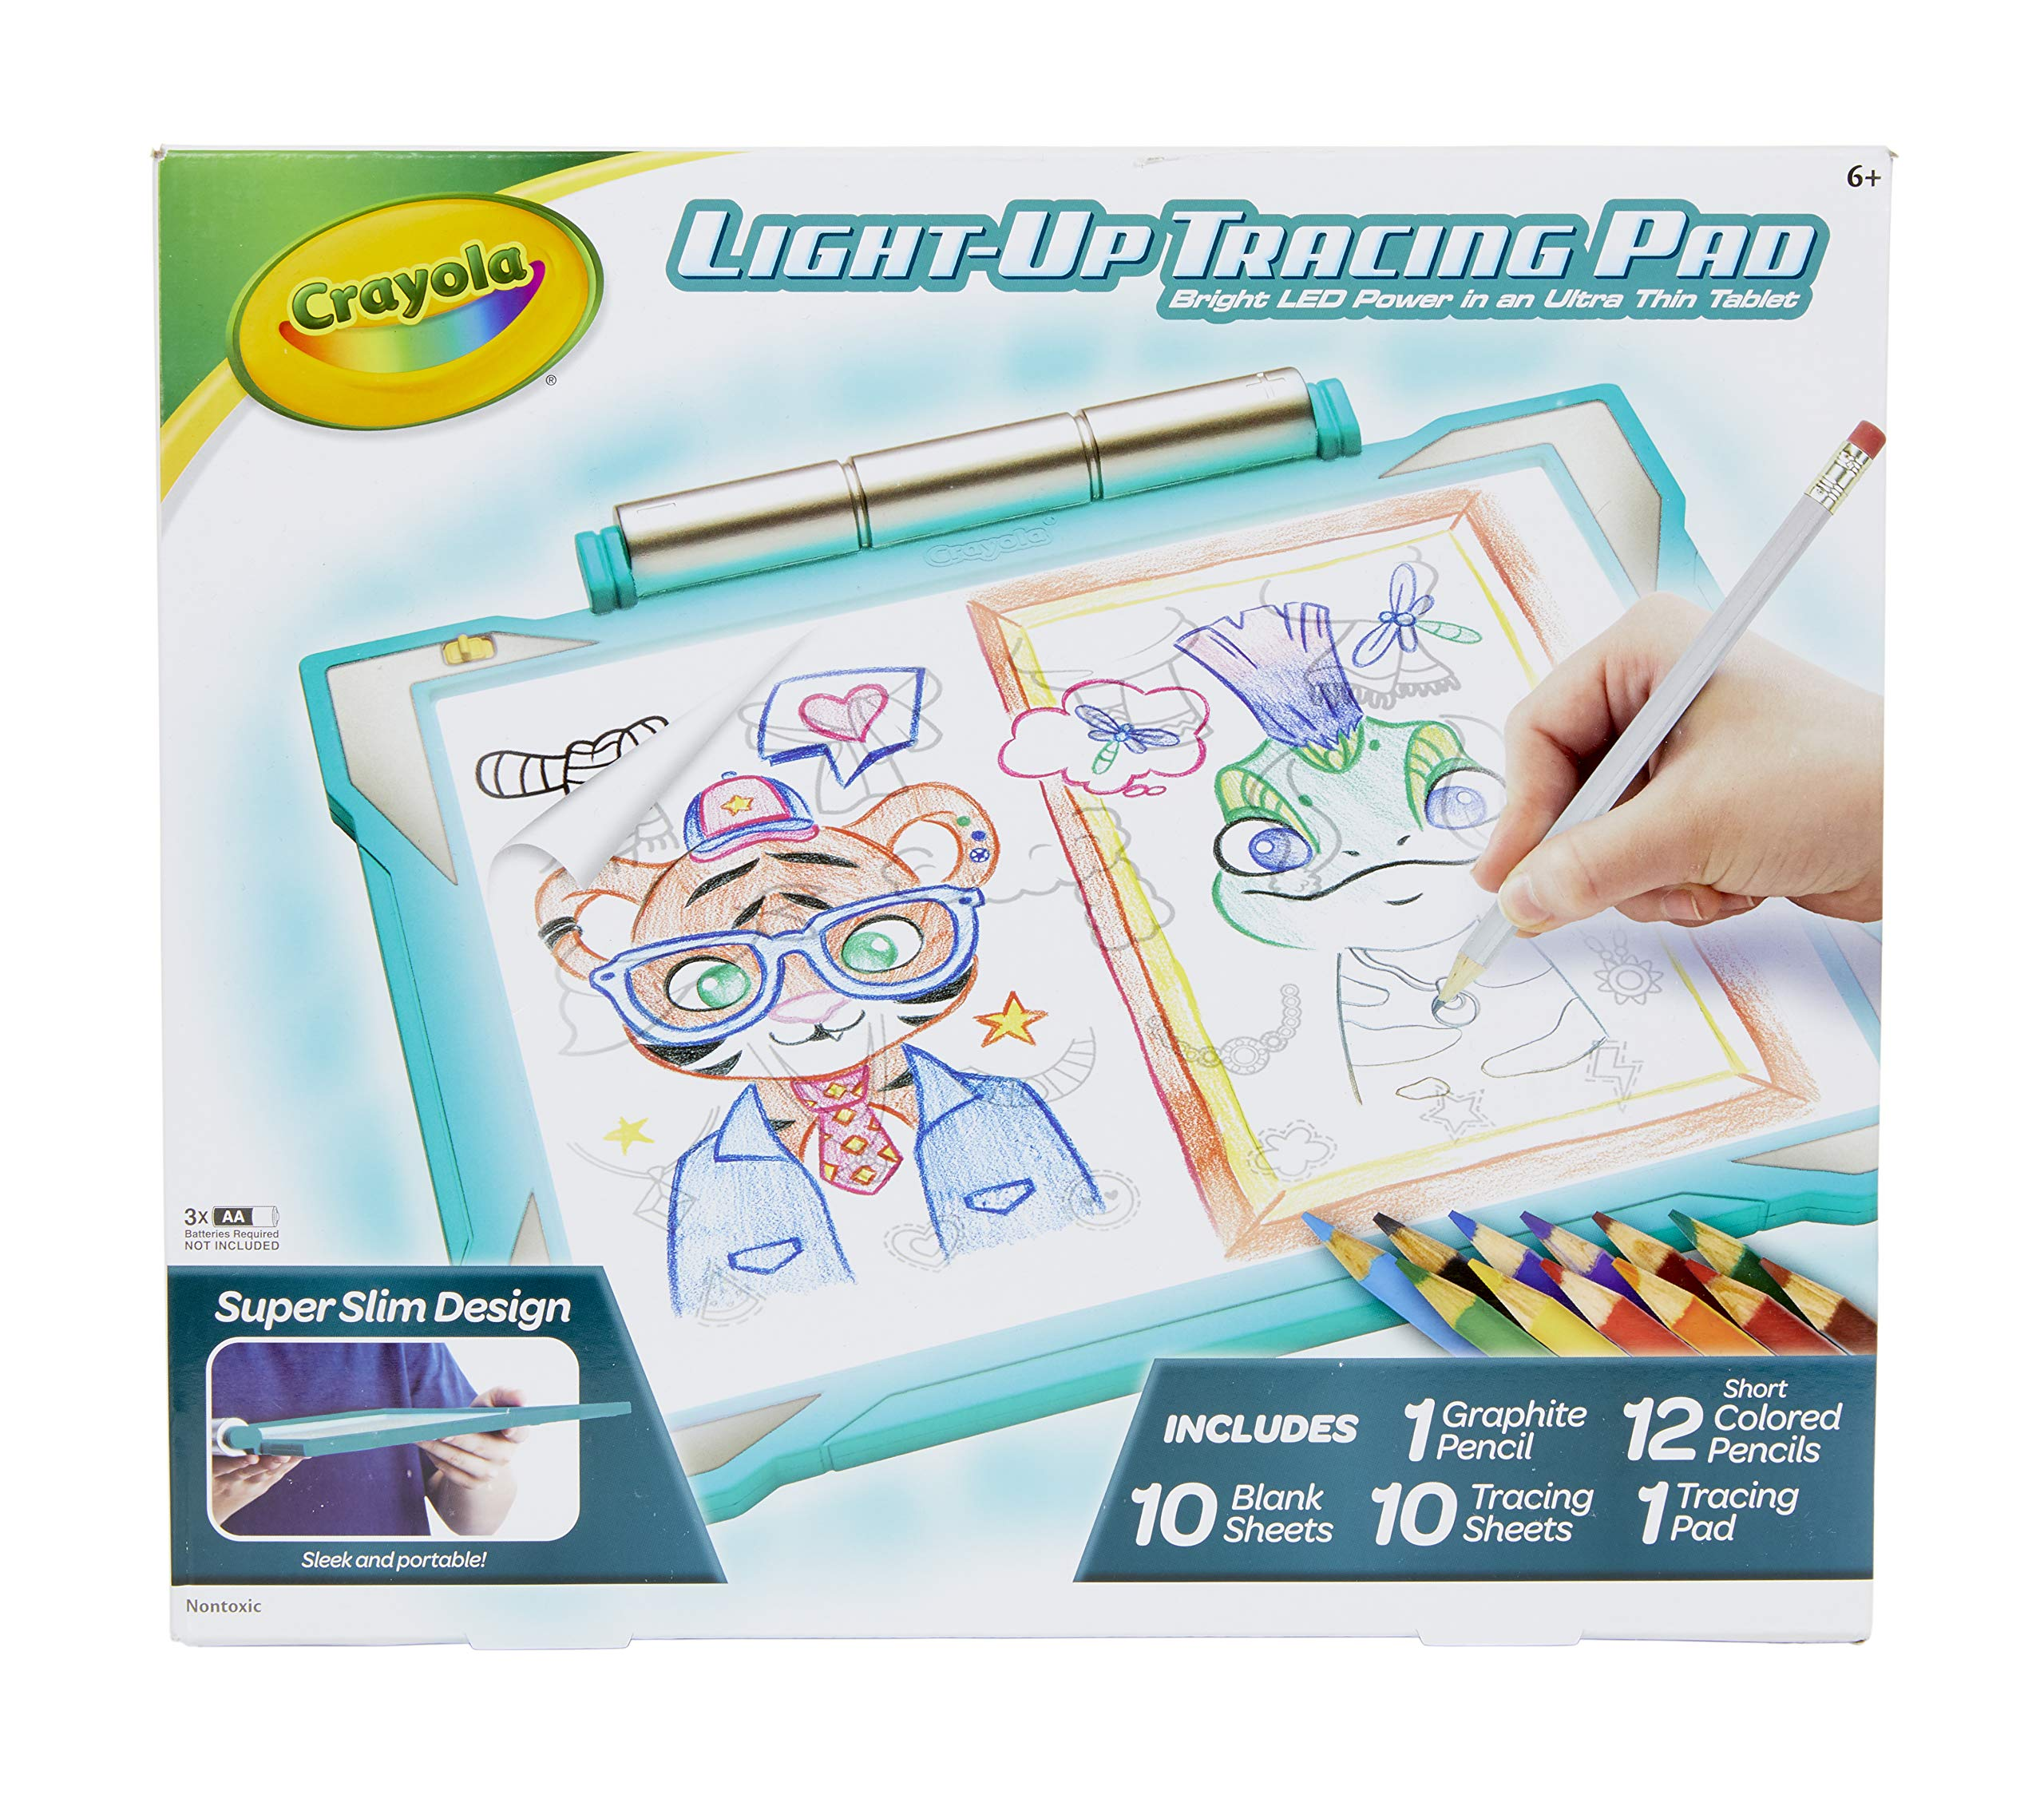 Crayola Light-Up Tracing Pad Teal, Coloring Board for Kids, Amazon, Toys for Boys, Ages 6, 7, 8, 9, 10 by Crayola